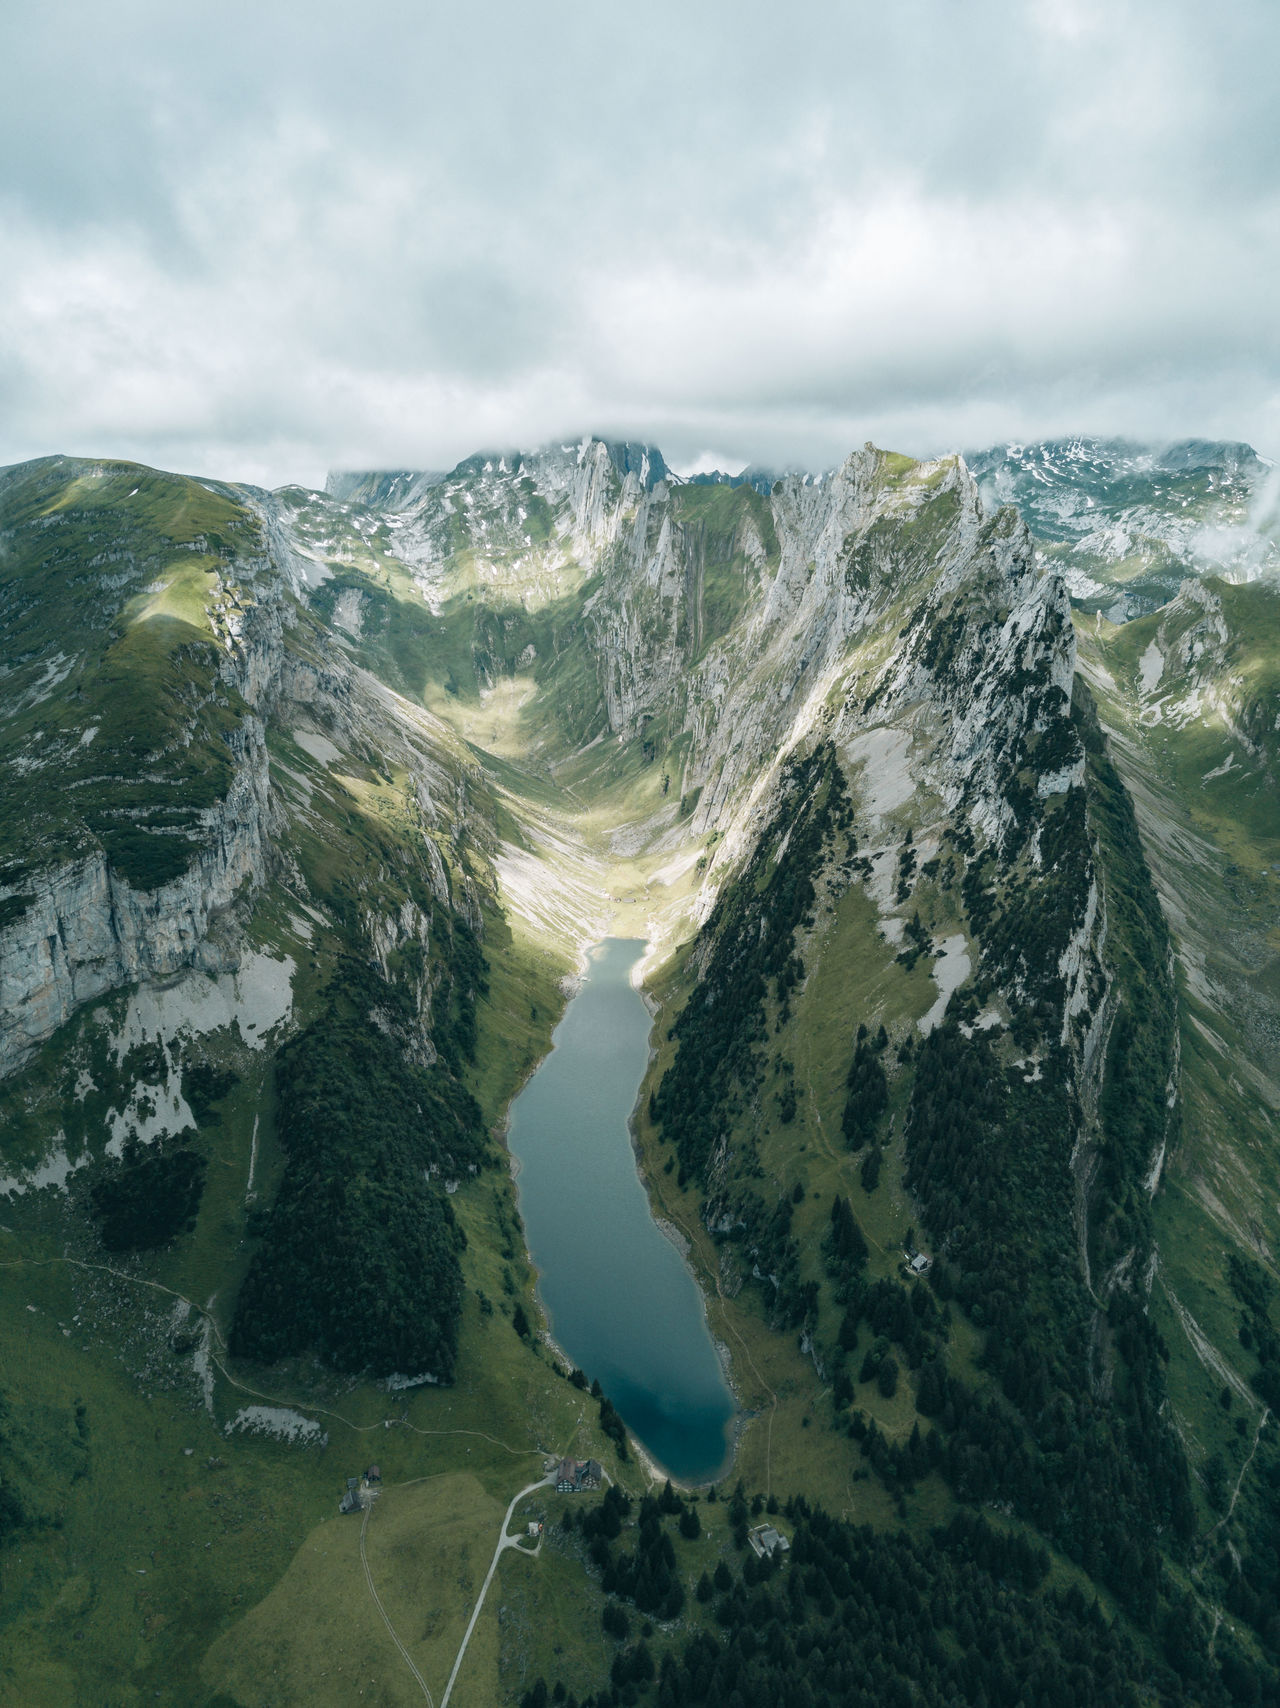 Panoramic view of a mountain range with a long lake and clouded sky Beauty In Nature Cloud - Sky Day Landscape Mountain Nature No People Outdoors Physical Geography Scenics Sky Tranquility Tree Water